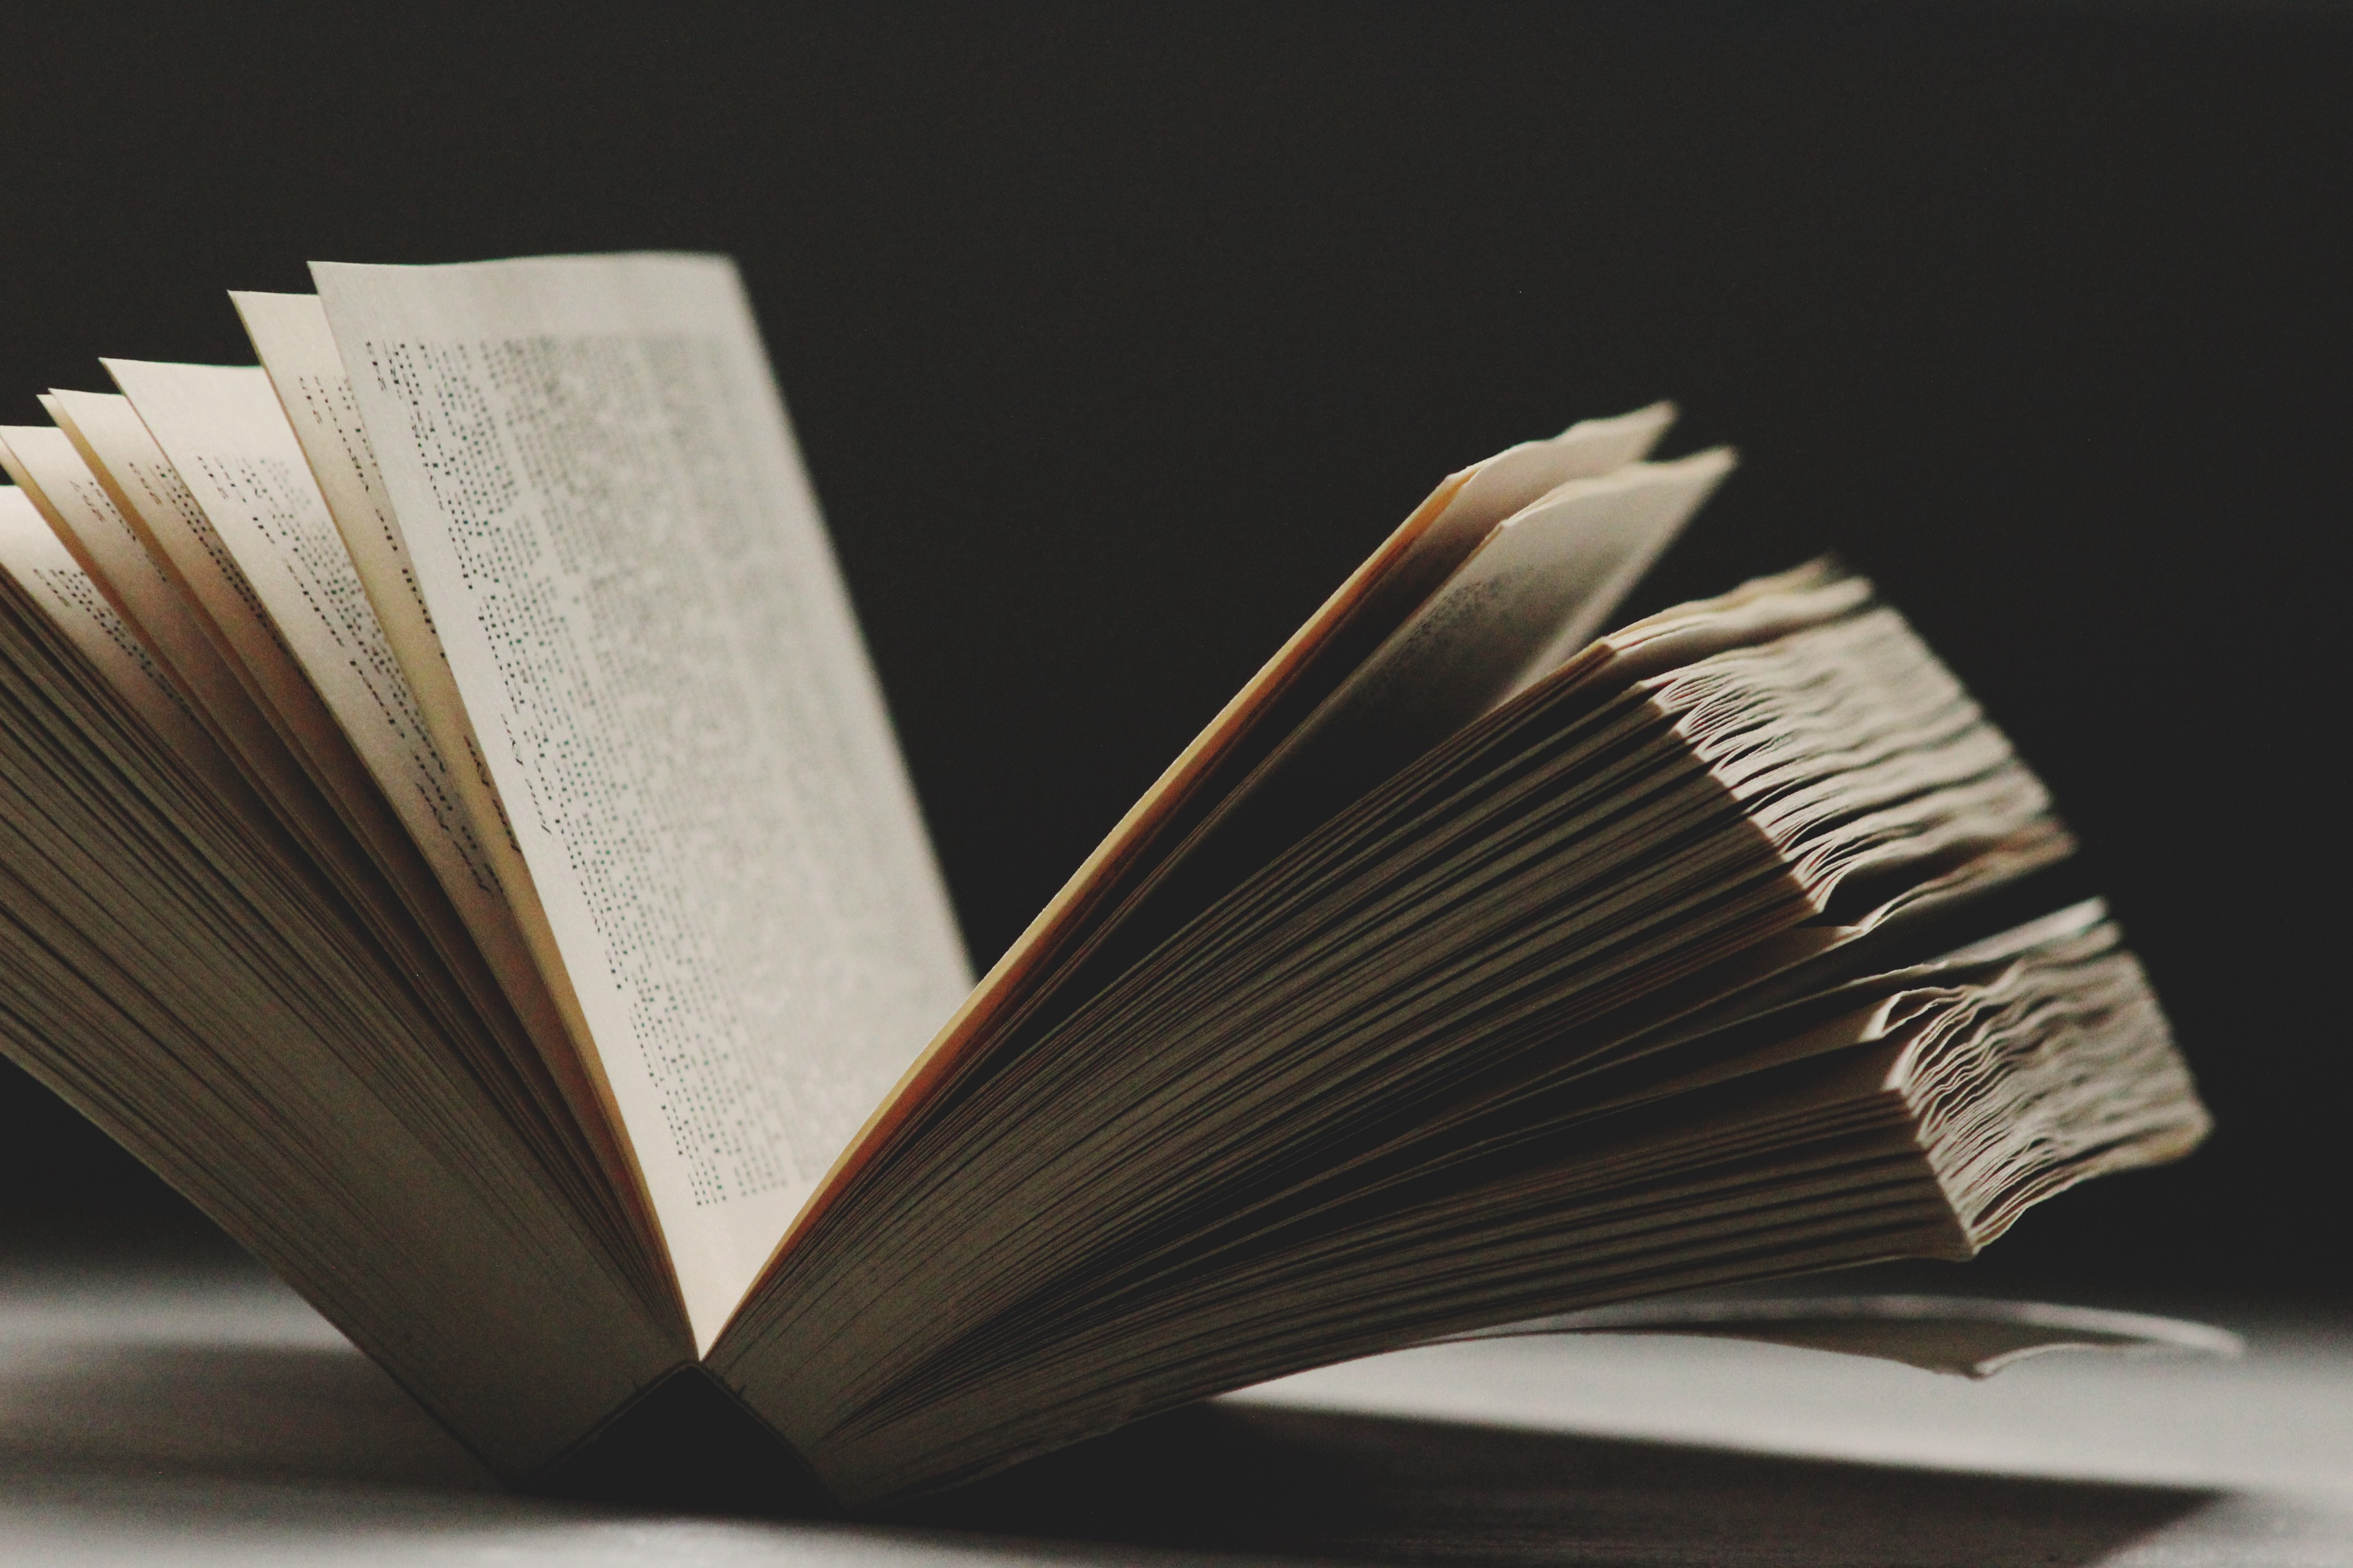 Building a book Recommendation System using Keras - Towards